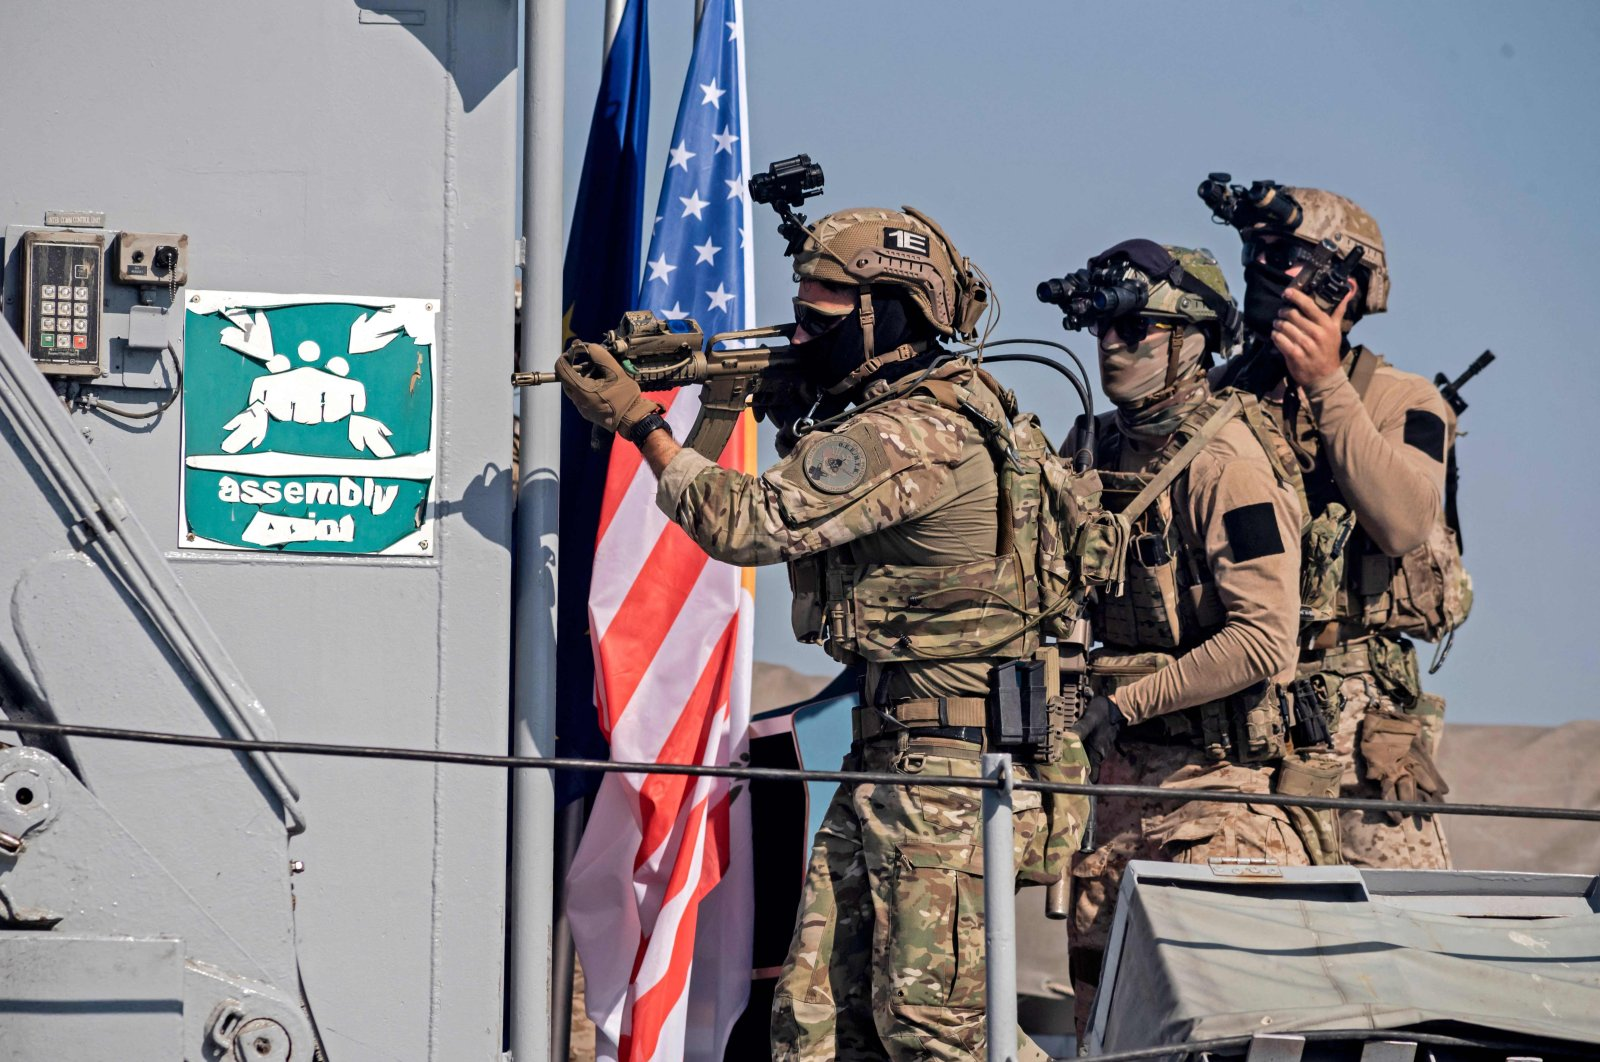 Greek Cypriot Navy special forces and U.S. Navy SEALS take part in a joint rescue exercise in the port of the southern Greek Cypriot port city of Limassol, Greek Cyprus, Sept. 10, 2021. (AFP Photo)